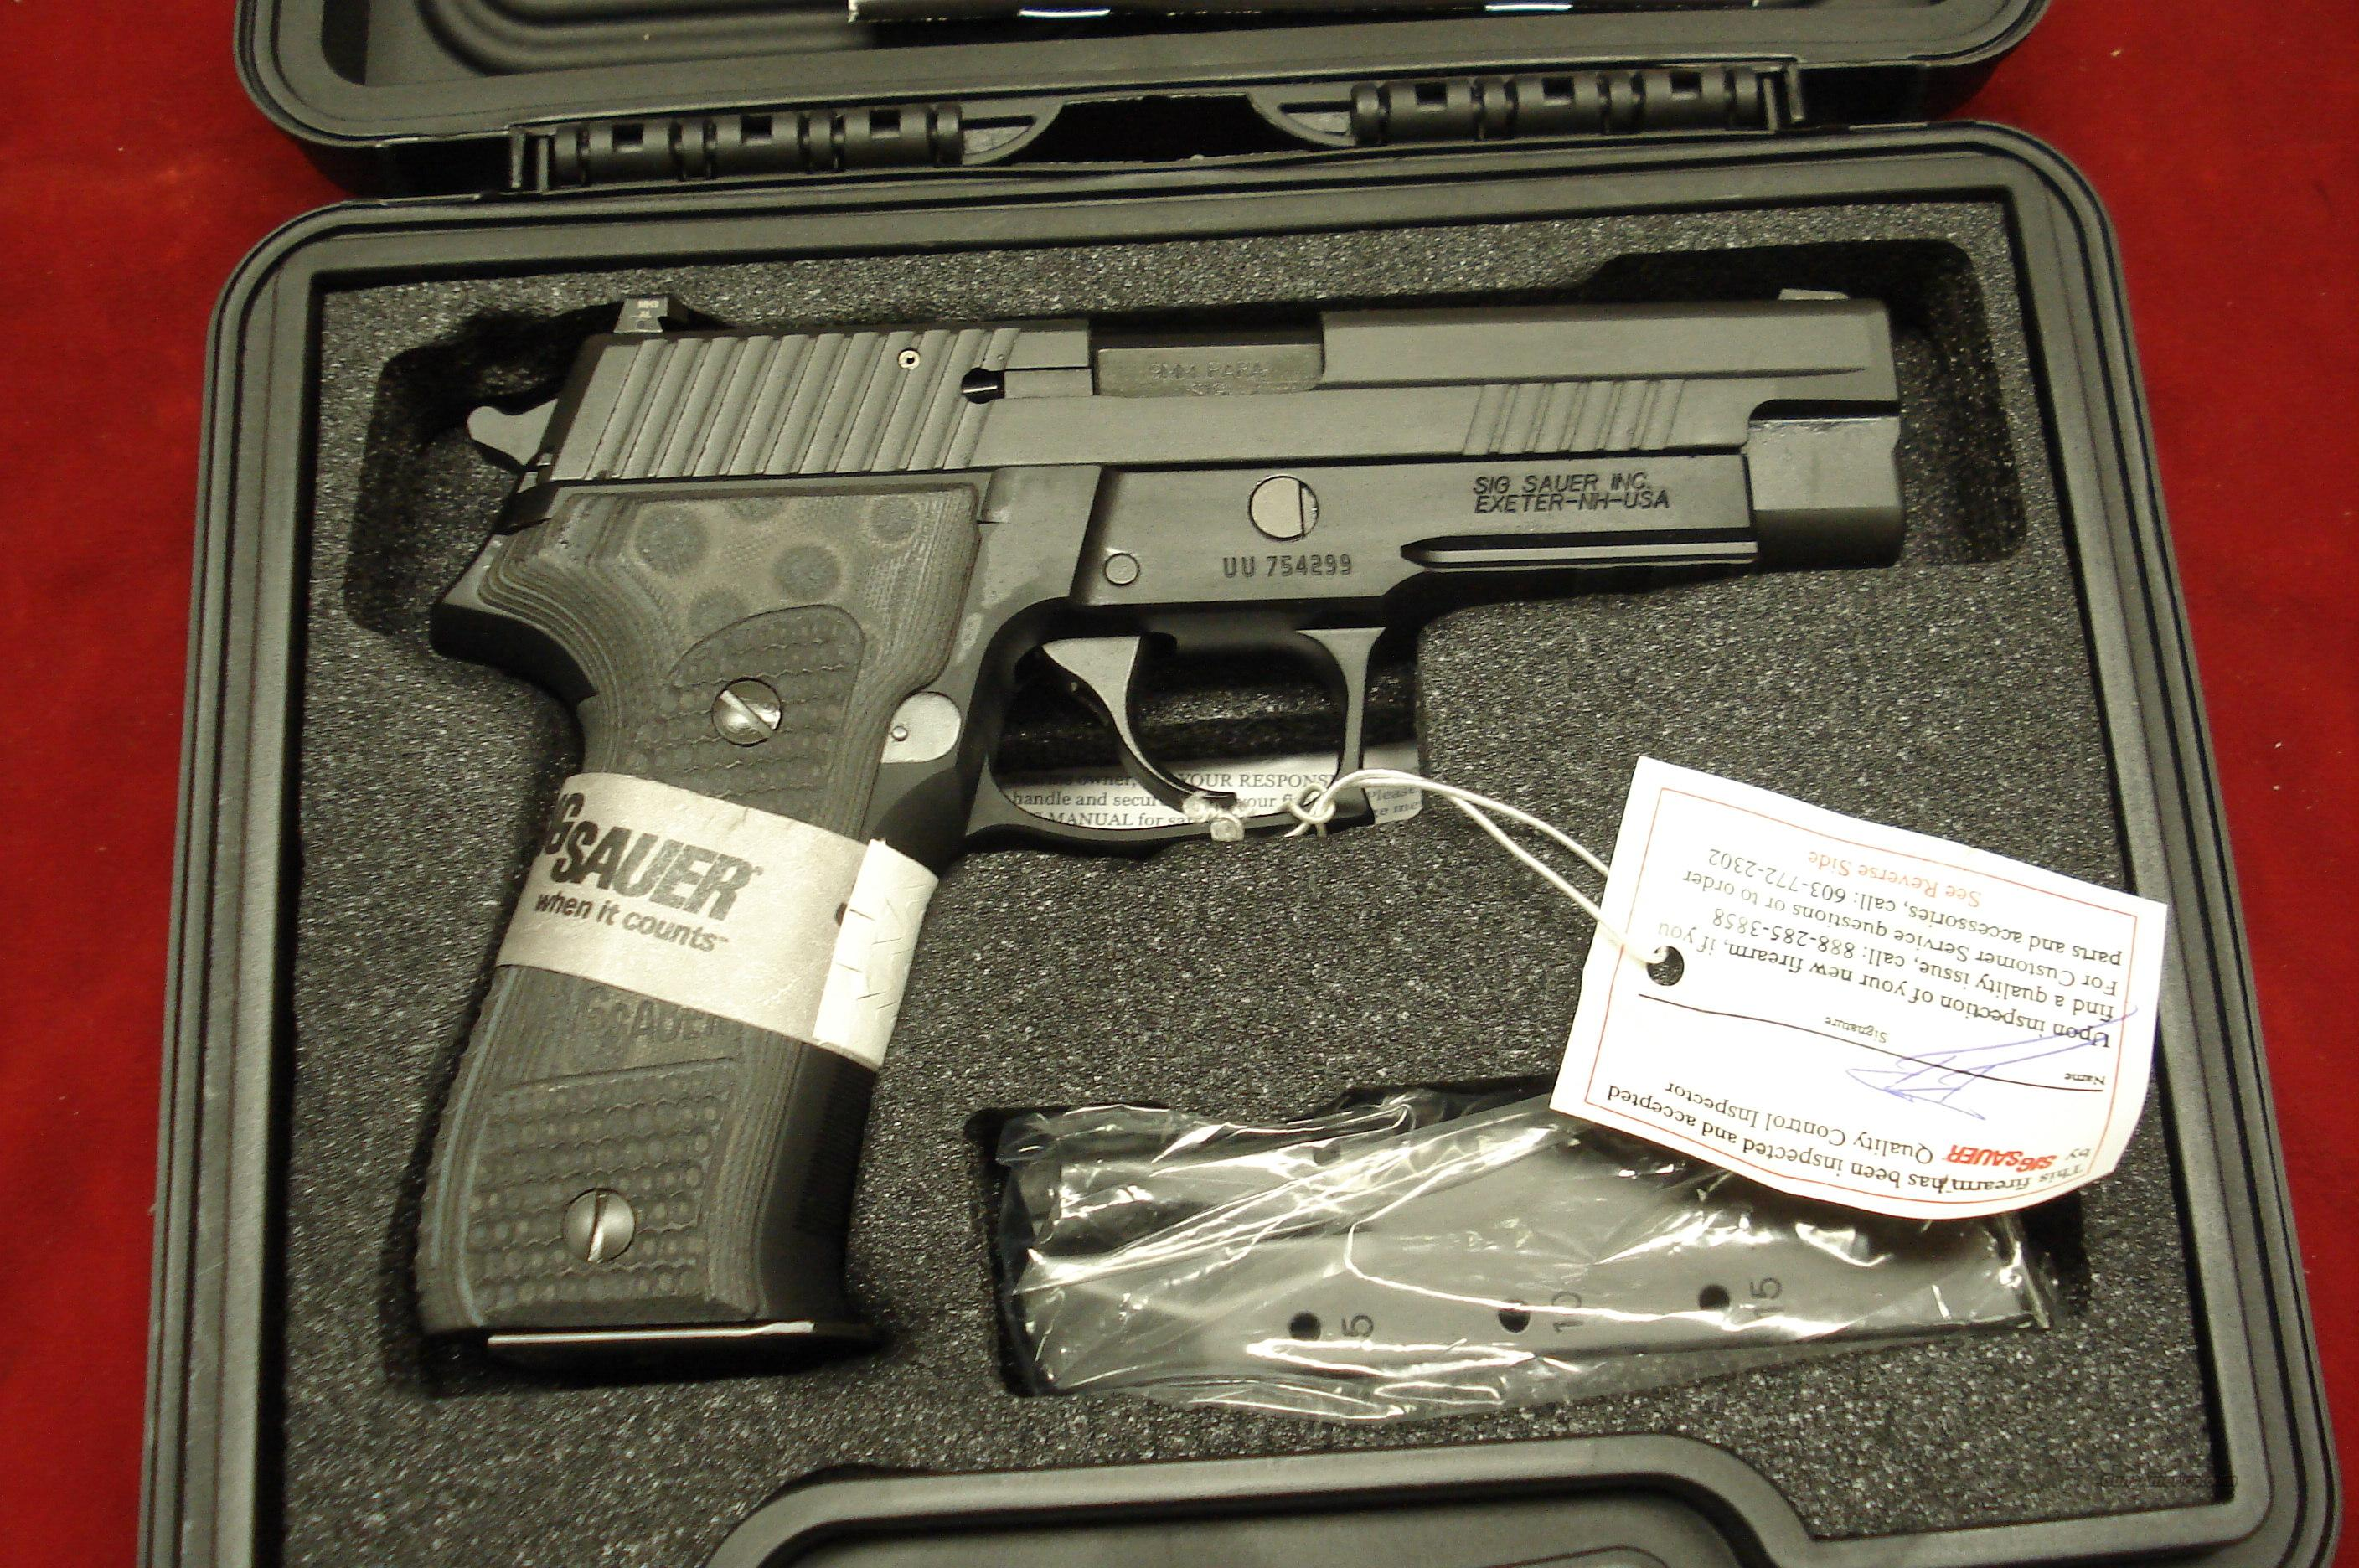 SIG SAUER P226 ENHANCED ELITE 9MM AND NIGHT SIGHTS NEW  Guns > Pistols > Sig - Sauer/Sigarms Pistols > P226